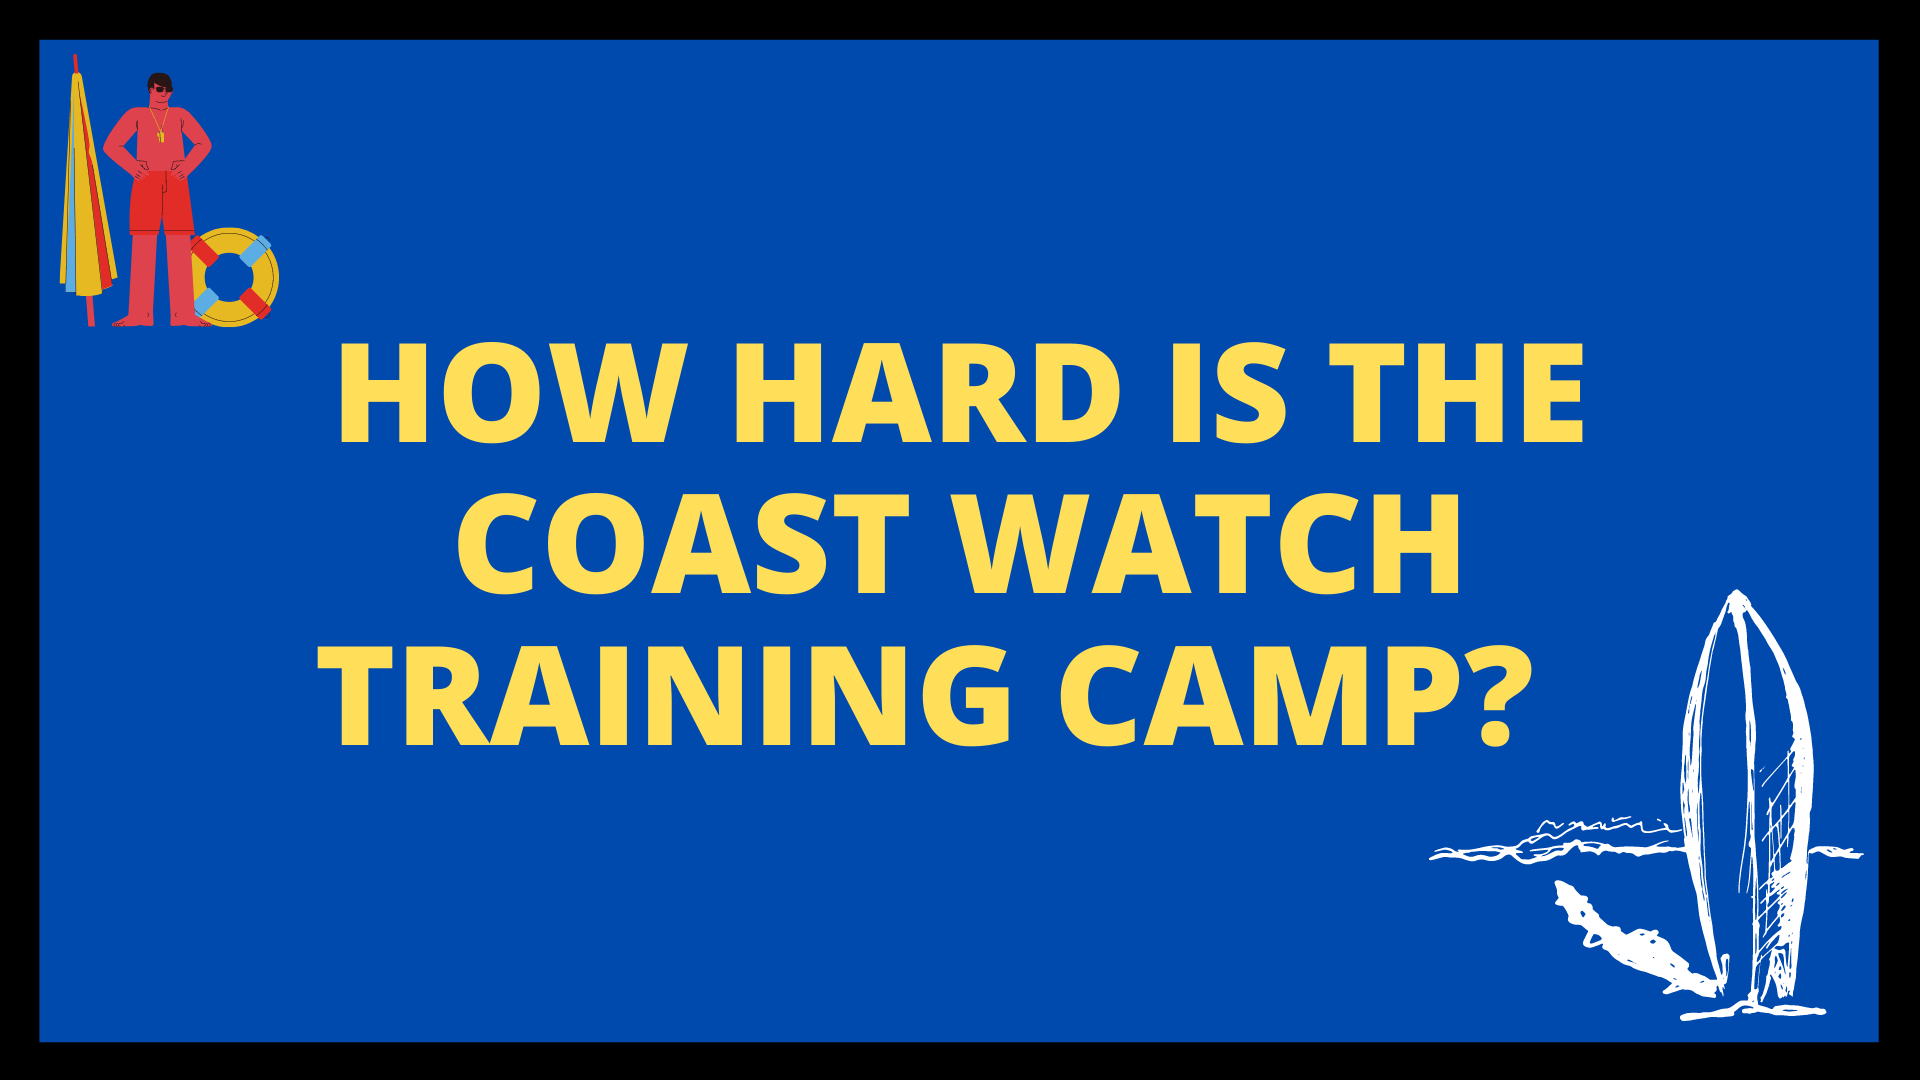 How Hard is the Coast Watch Training Camp?